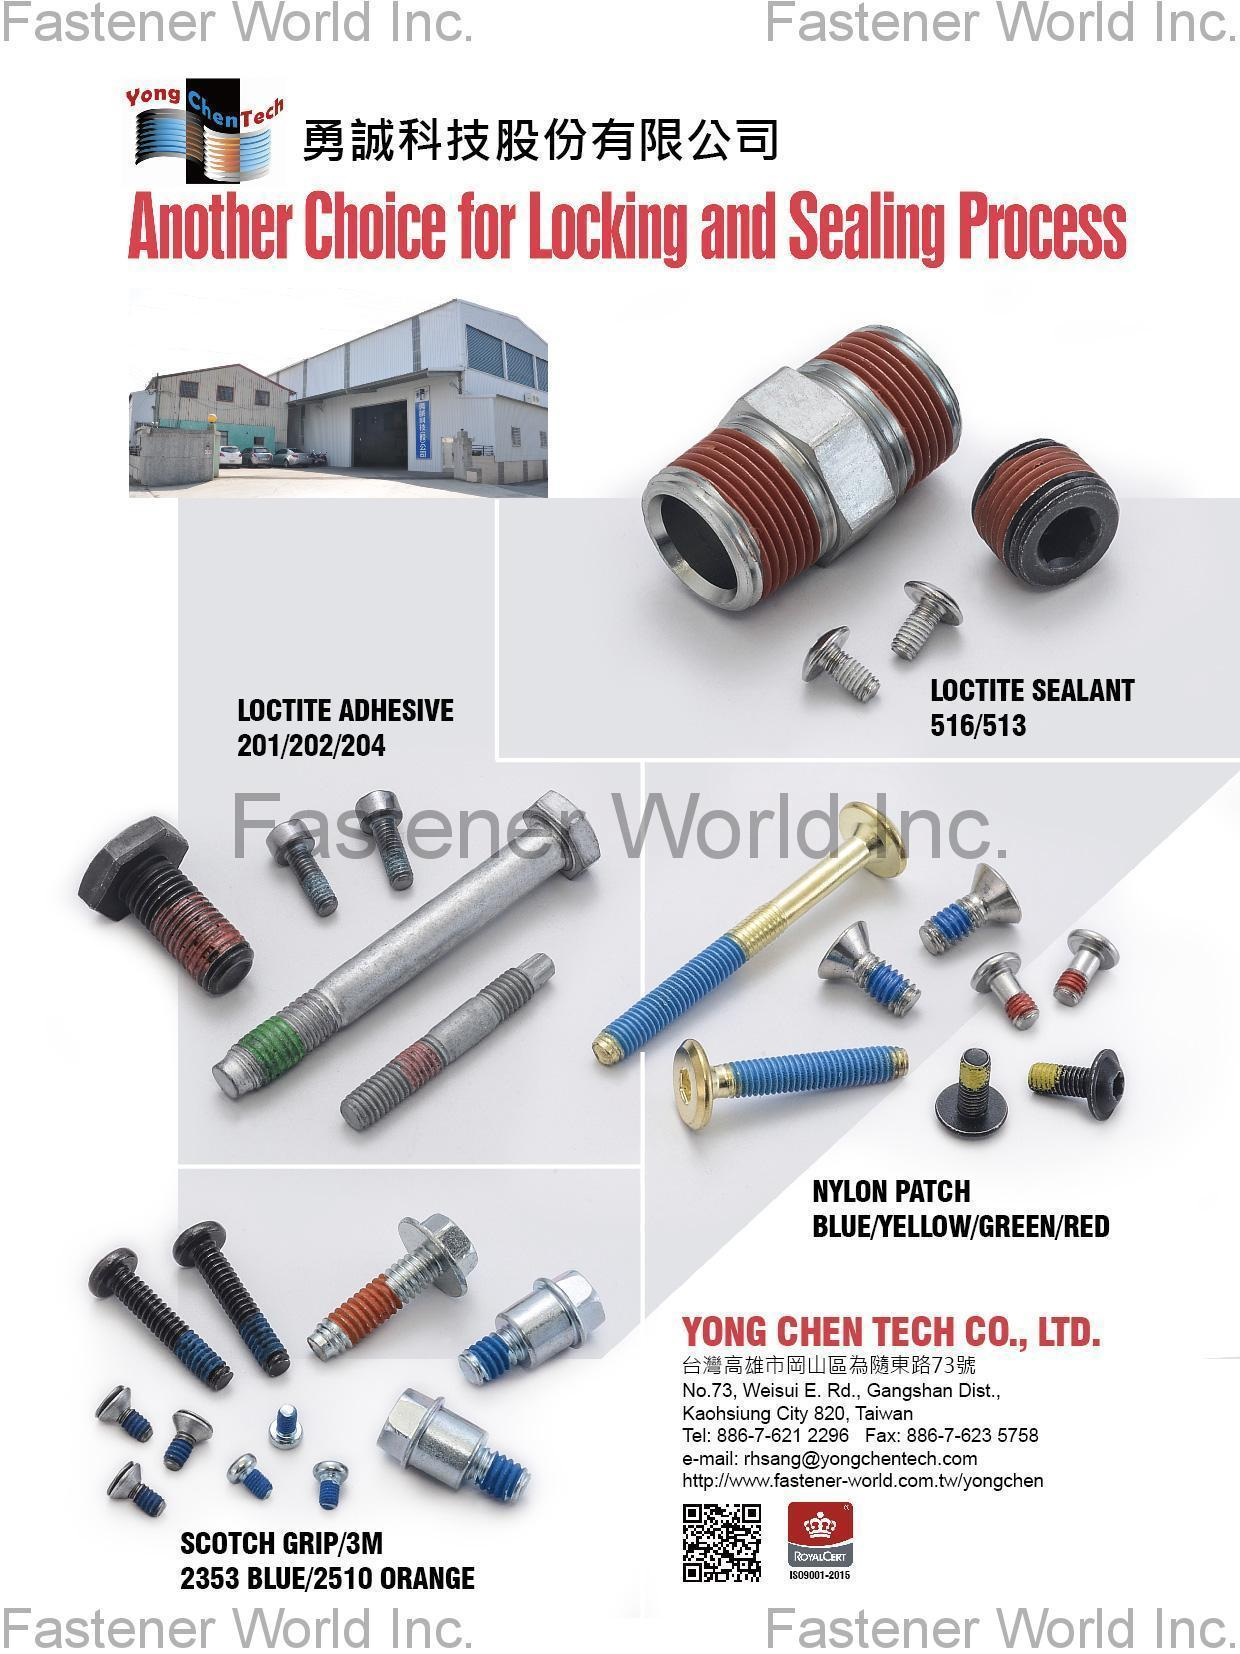 YONG CHEN TECH CO., LTD. Online Catalogues